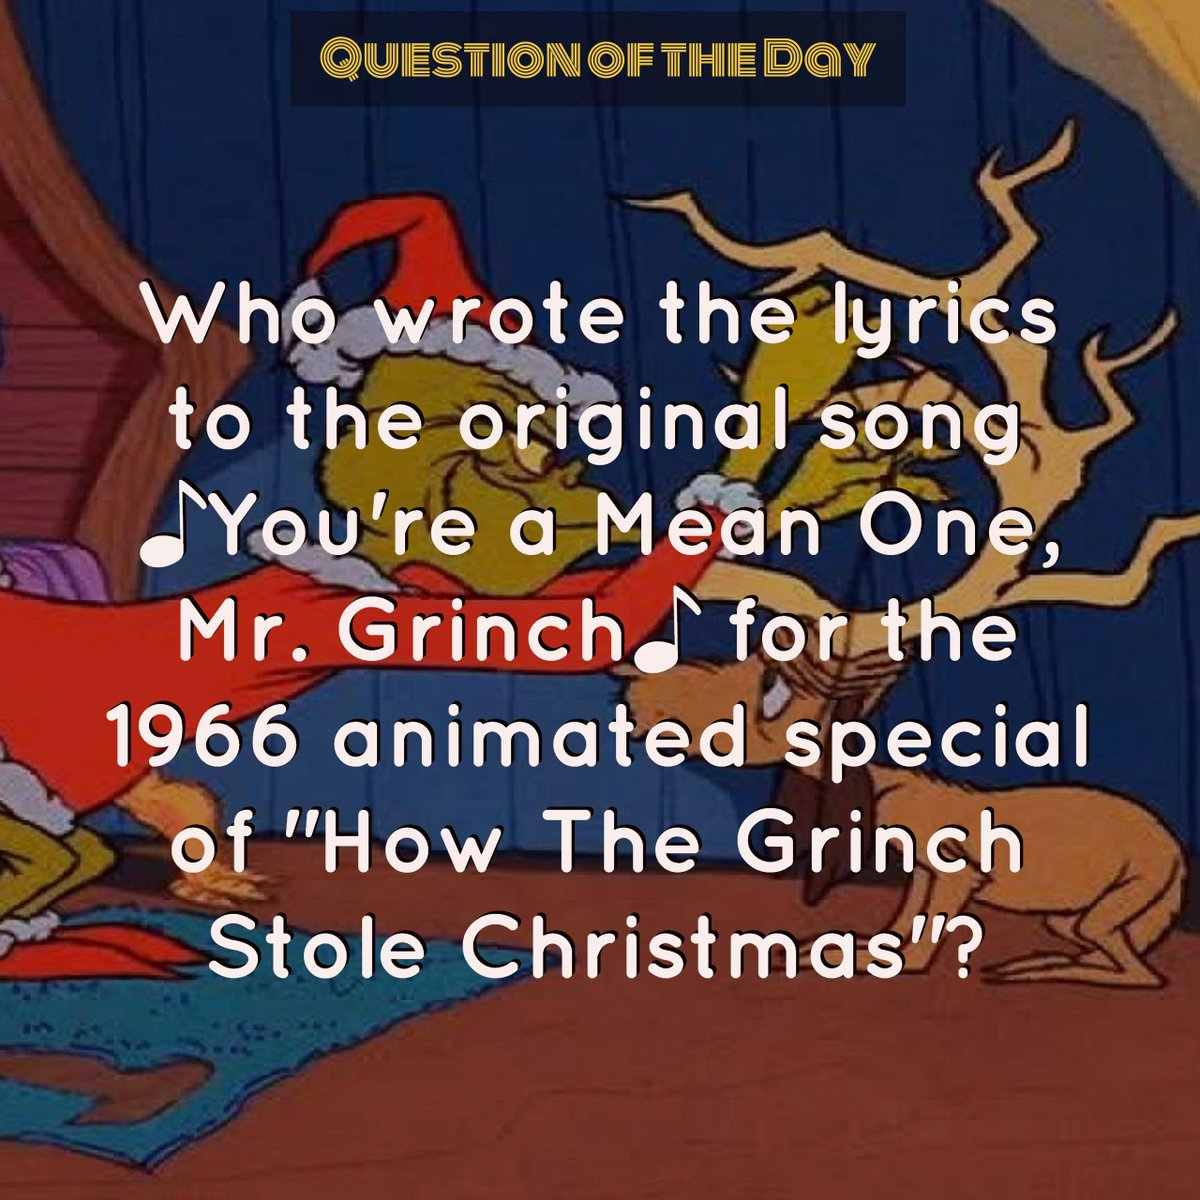 How The Grinch Stole Christmas Lyrics.Iq 2000 Trivia On Twitter Questionoftheday Who Wrote The